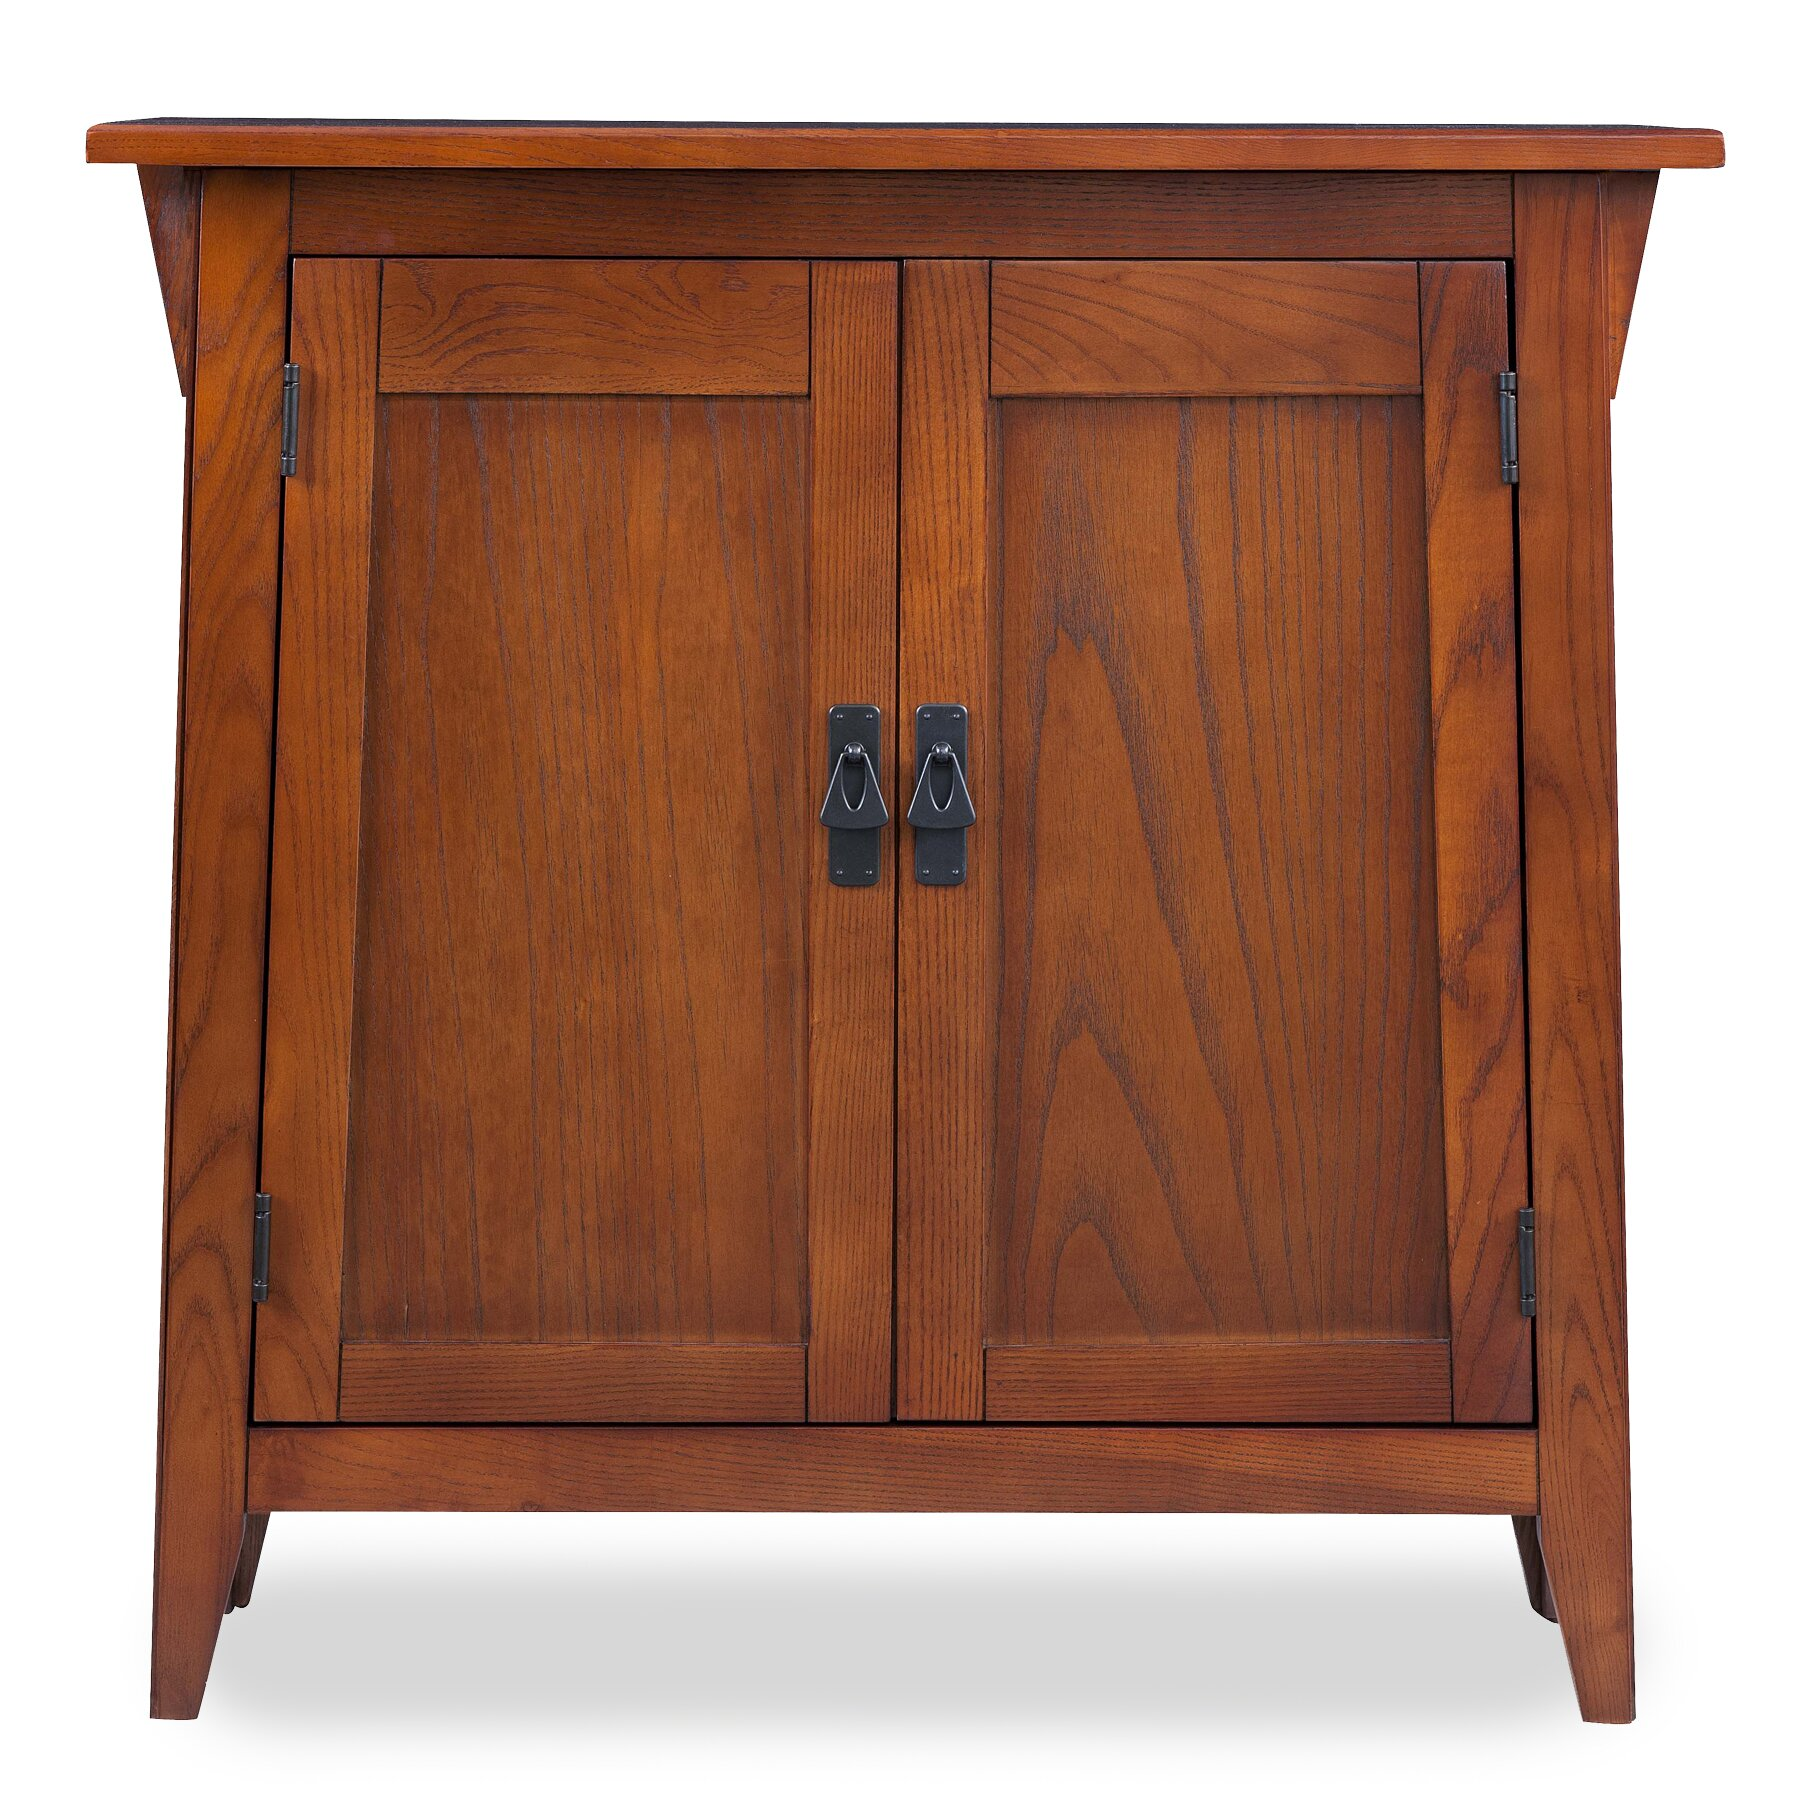 Foyer Cabinets : Charlton home apple valley foyer cabinet hall stand